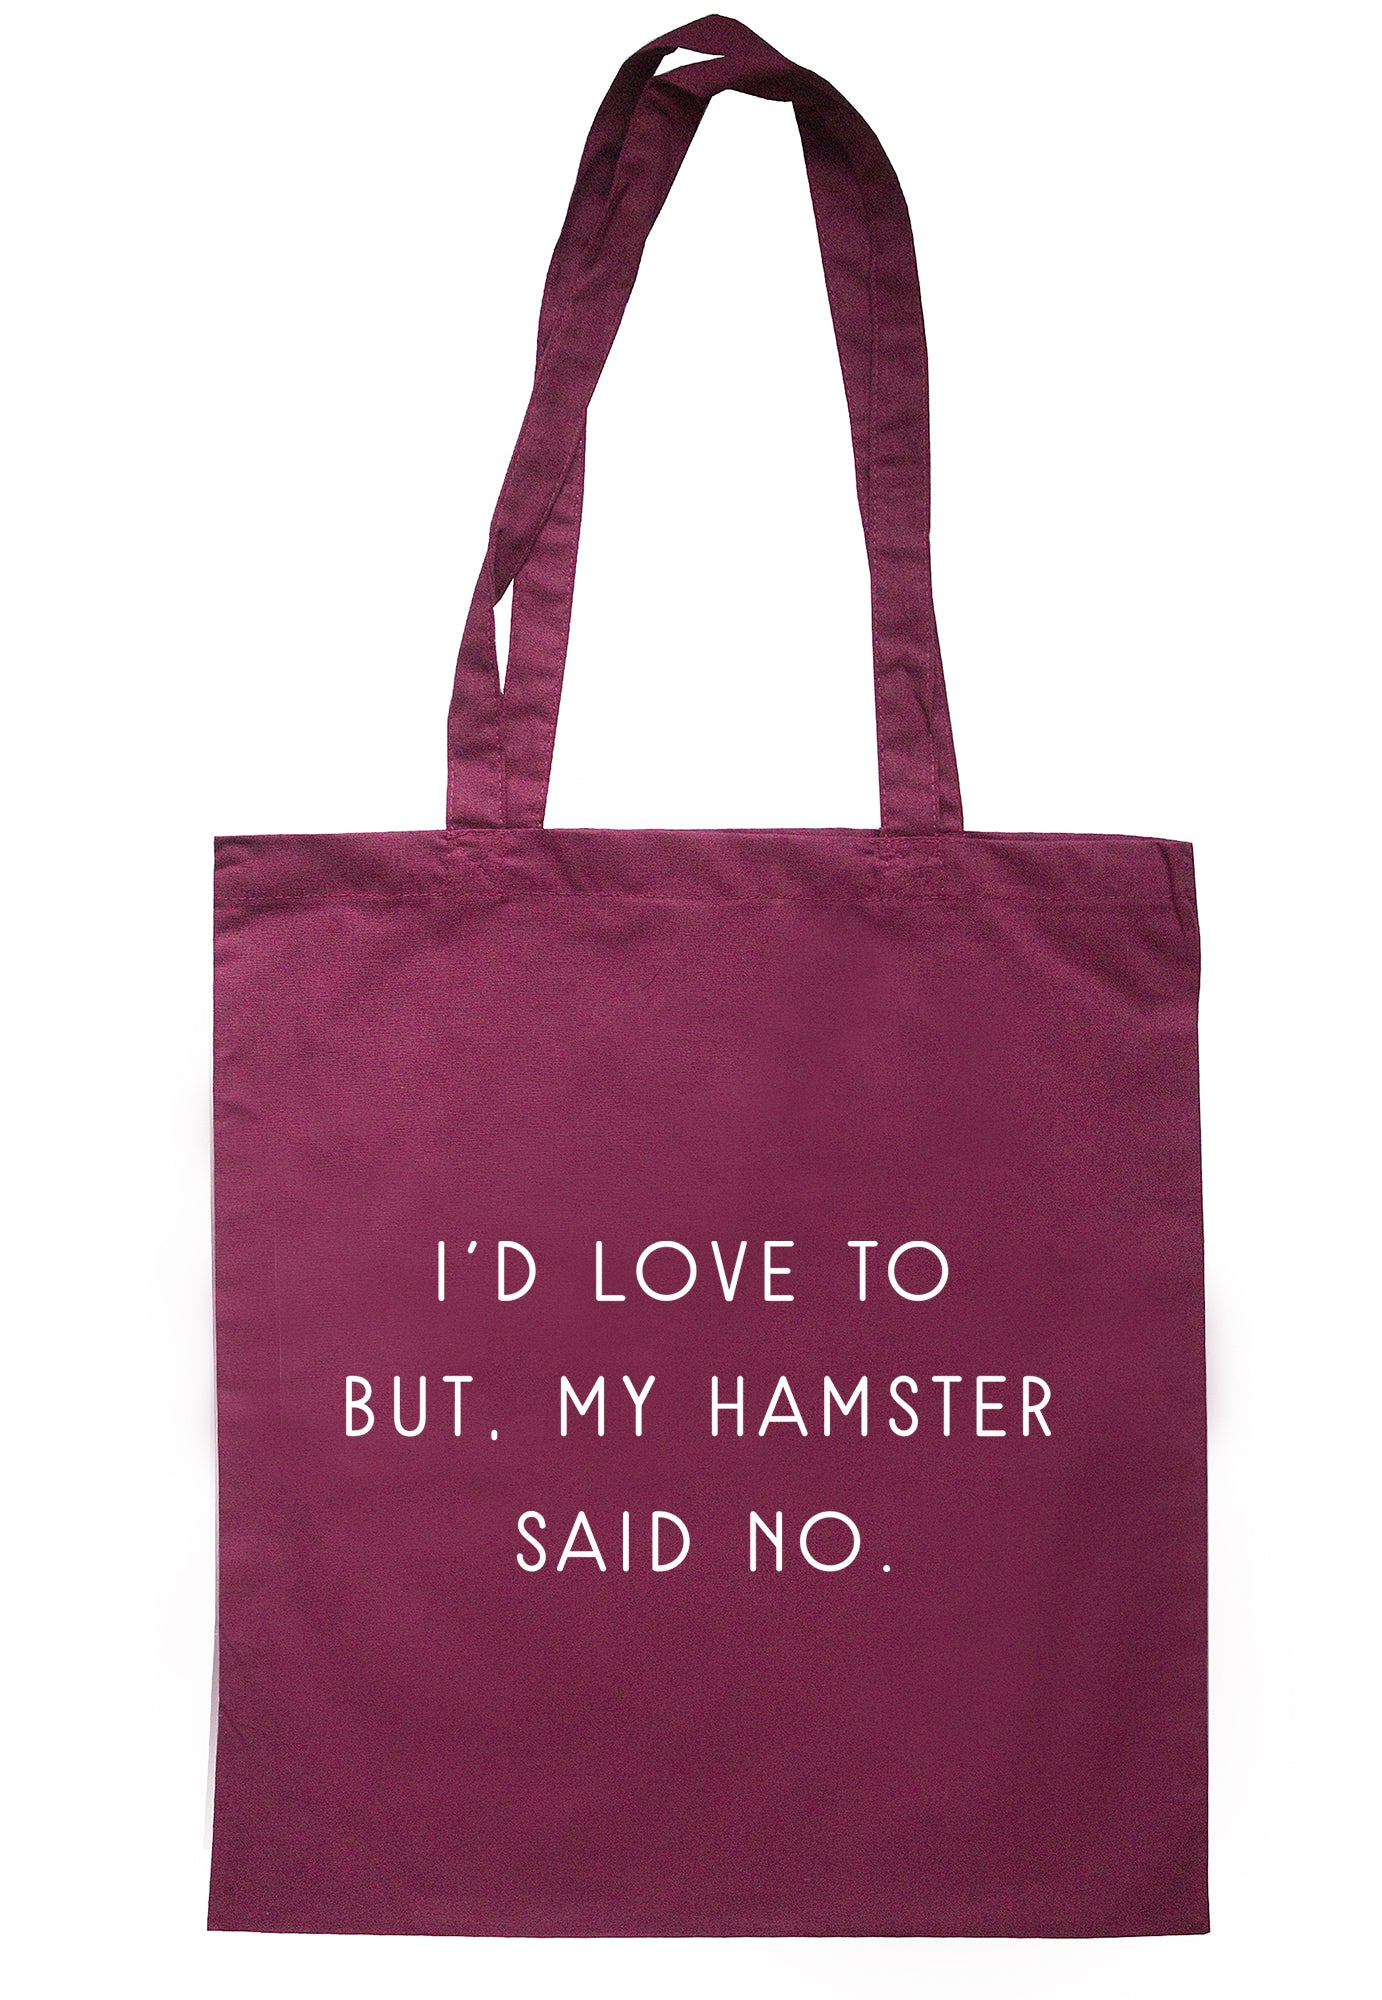 I'd Love To But, My Hamster Said No Tote Bag S1061 - Illustrated Identity Ltd.